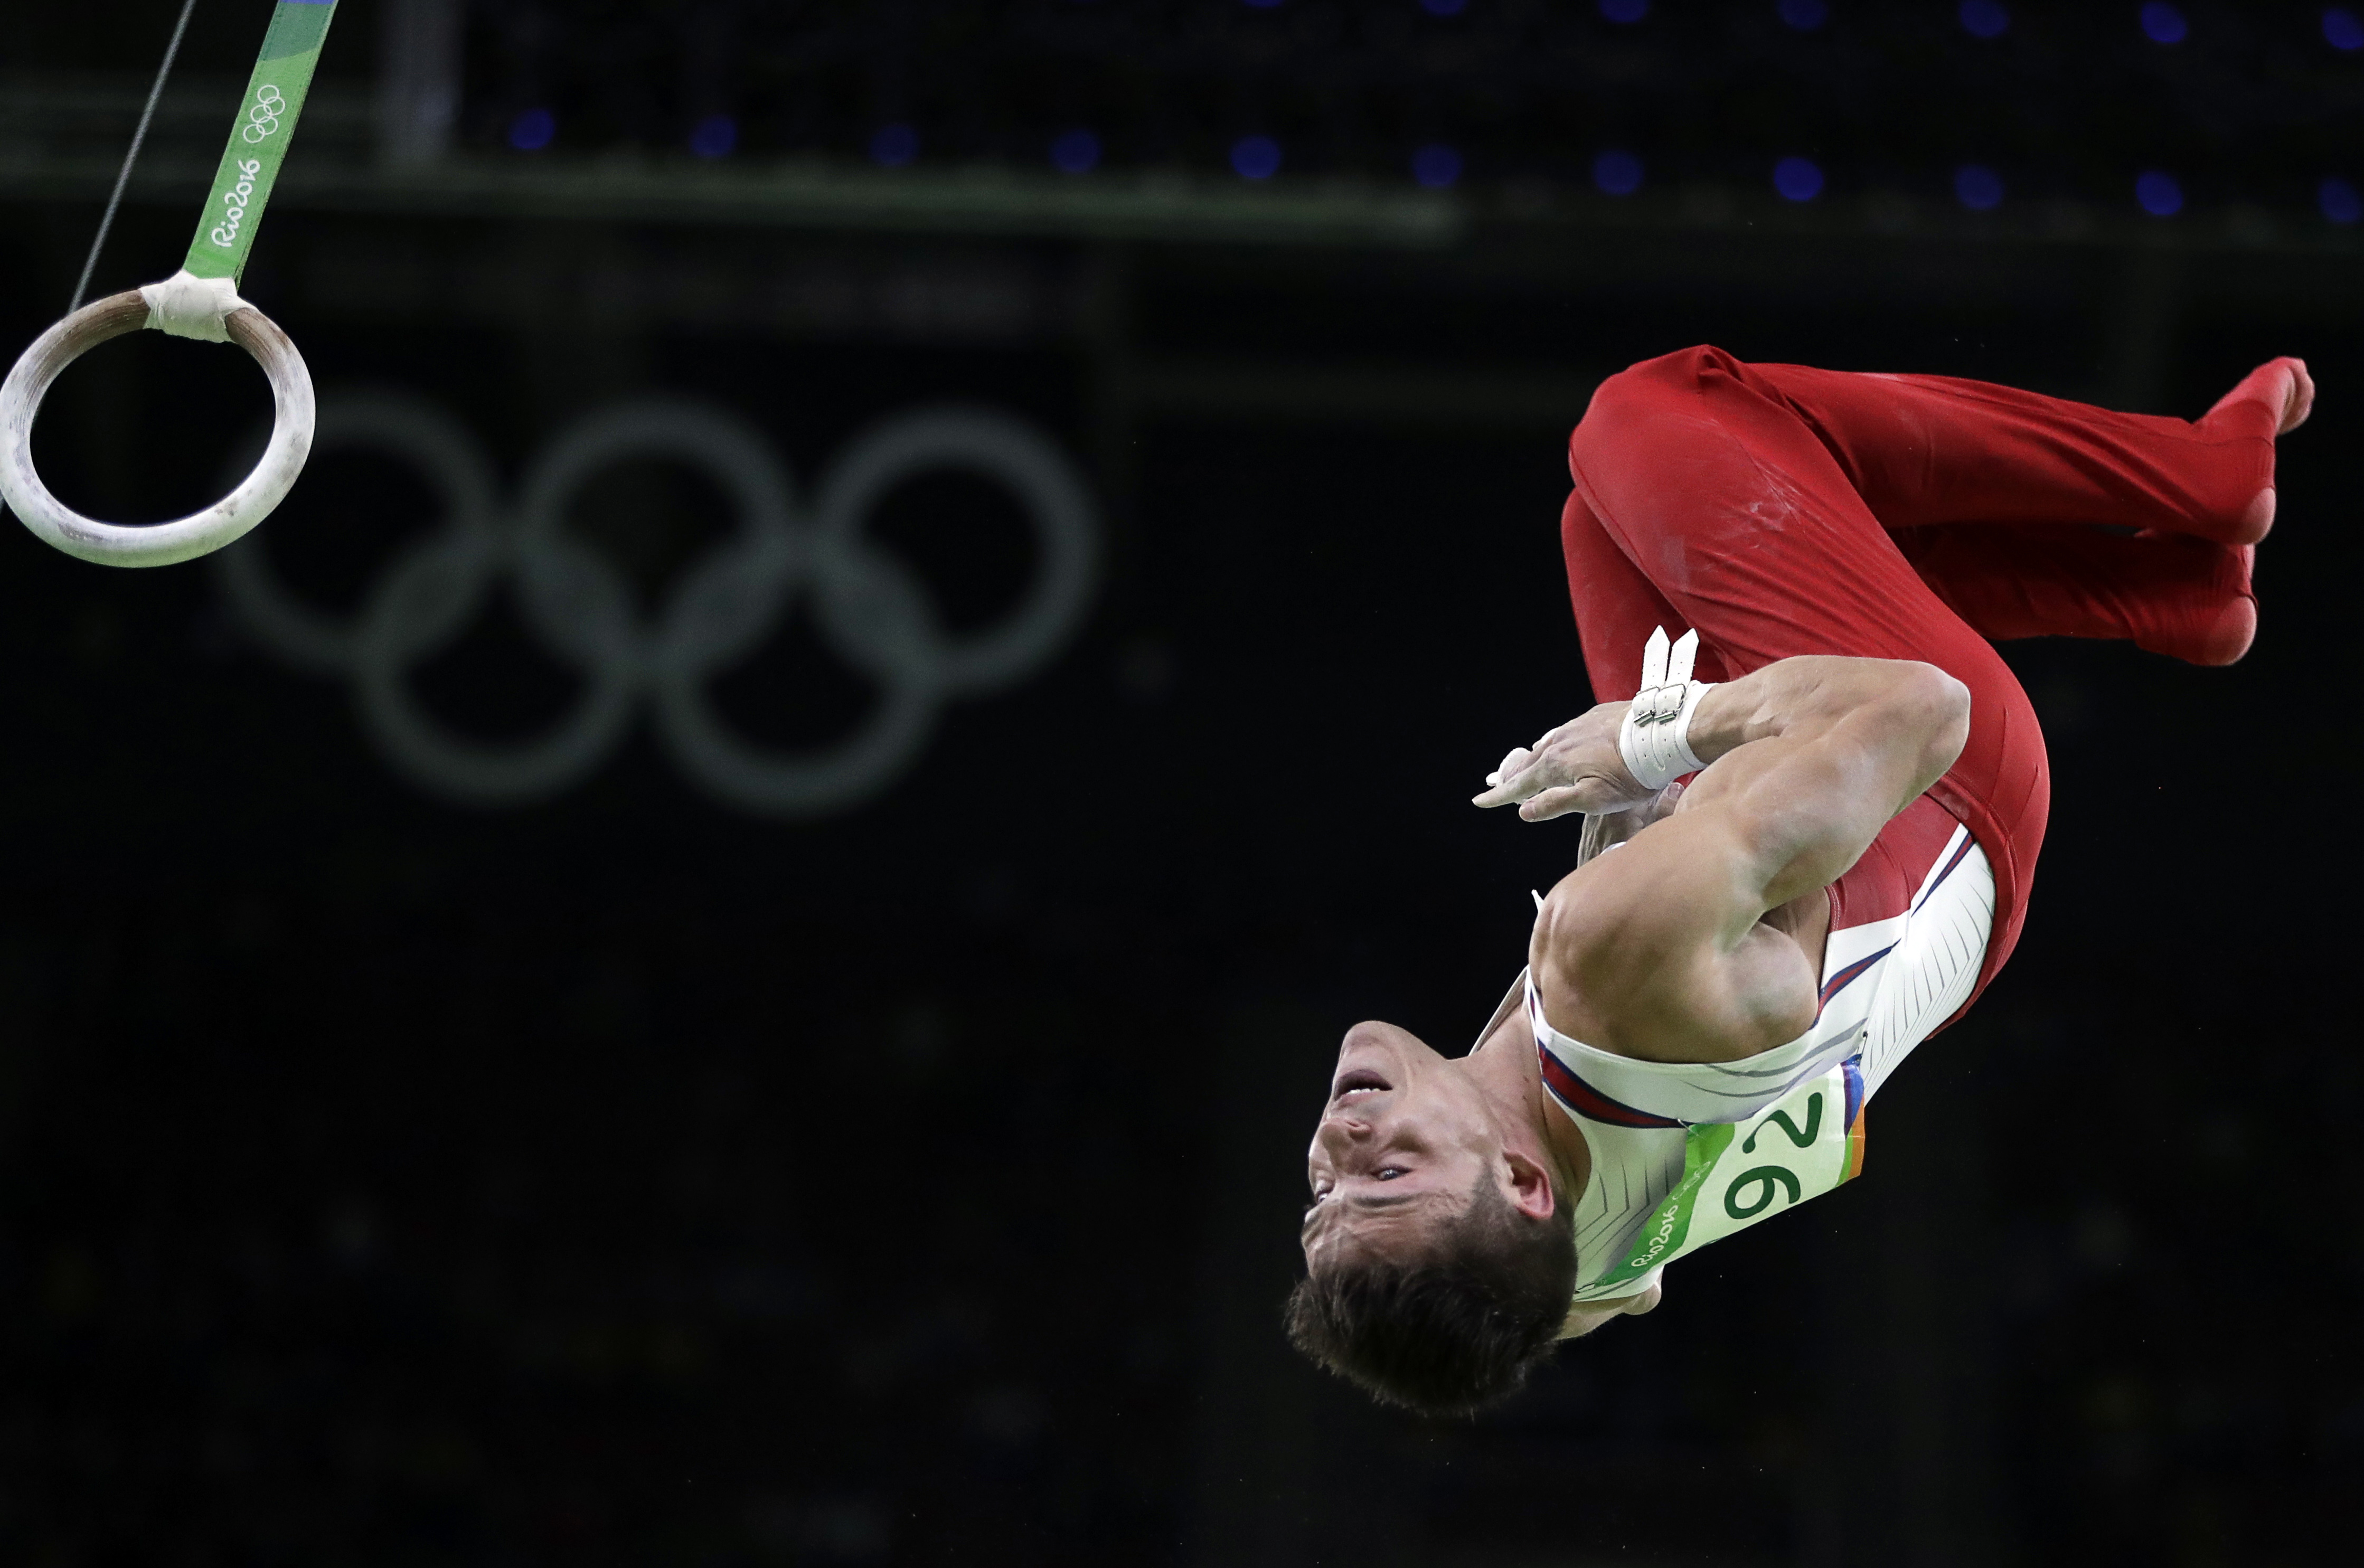 United States' Chris Brooks performs on the rings during the artistic gymnastics men's individual all-around final at the 2016 Summer Olympics in Rio de Janeiro, Brazil, Wednesday, Aug. 10, 2016. (AP Photo/Julio Cortez)